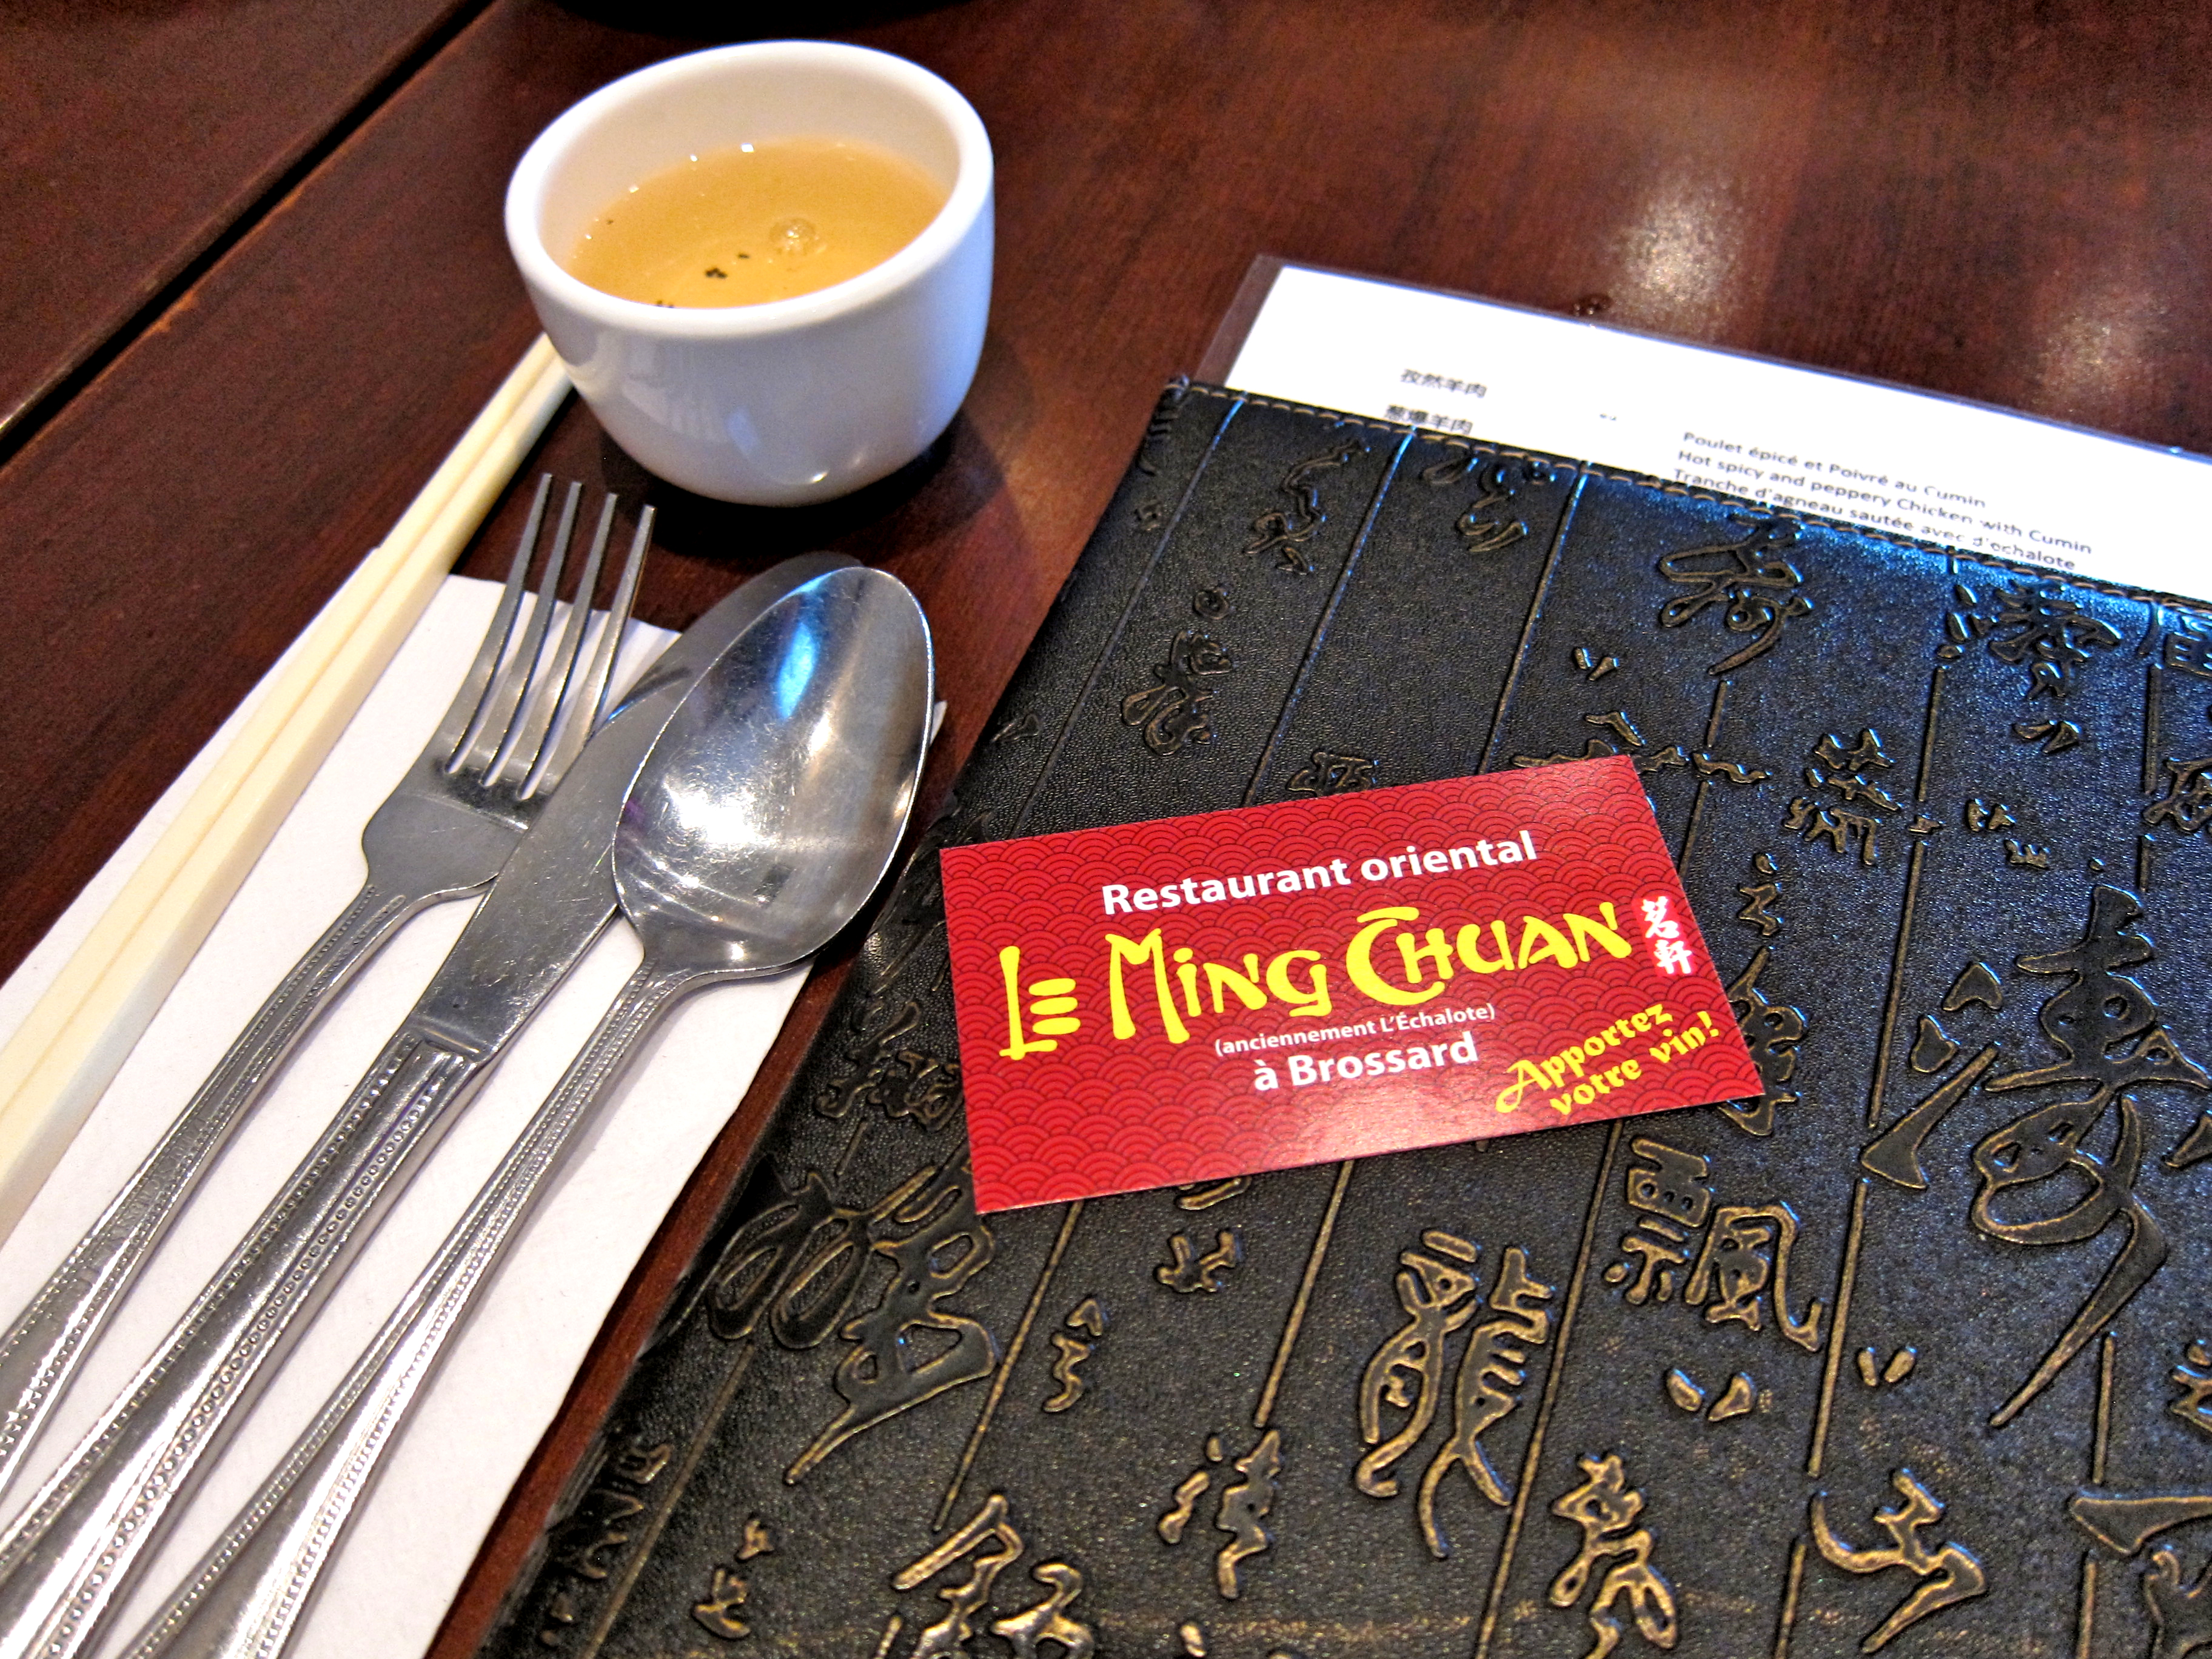 [MTL] Authentic Sichuan Food Spiced-Up in Brossard – Le Ming Chuan